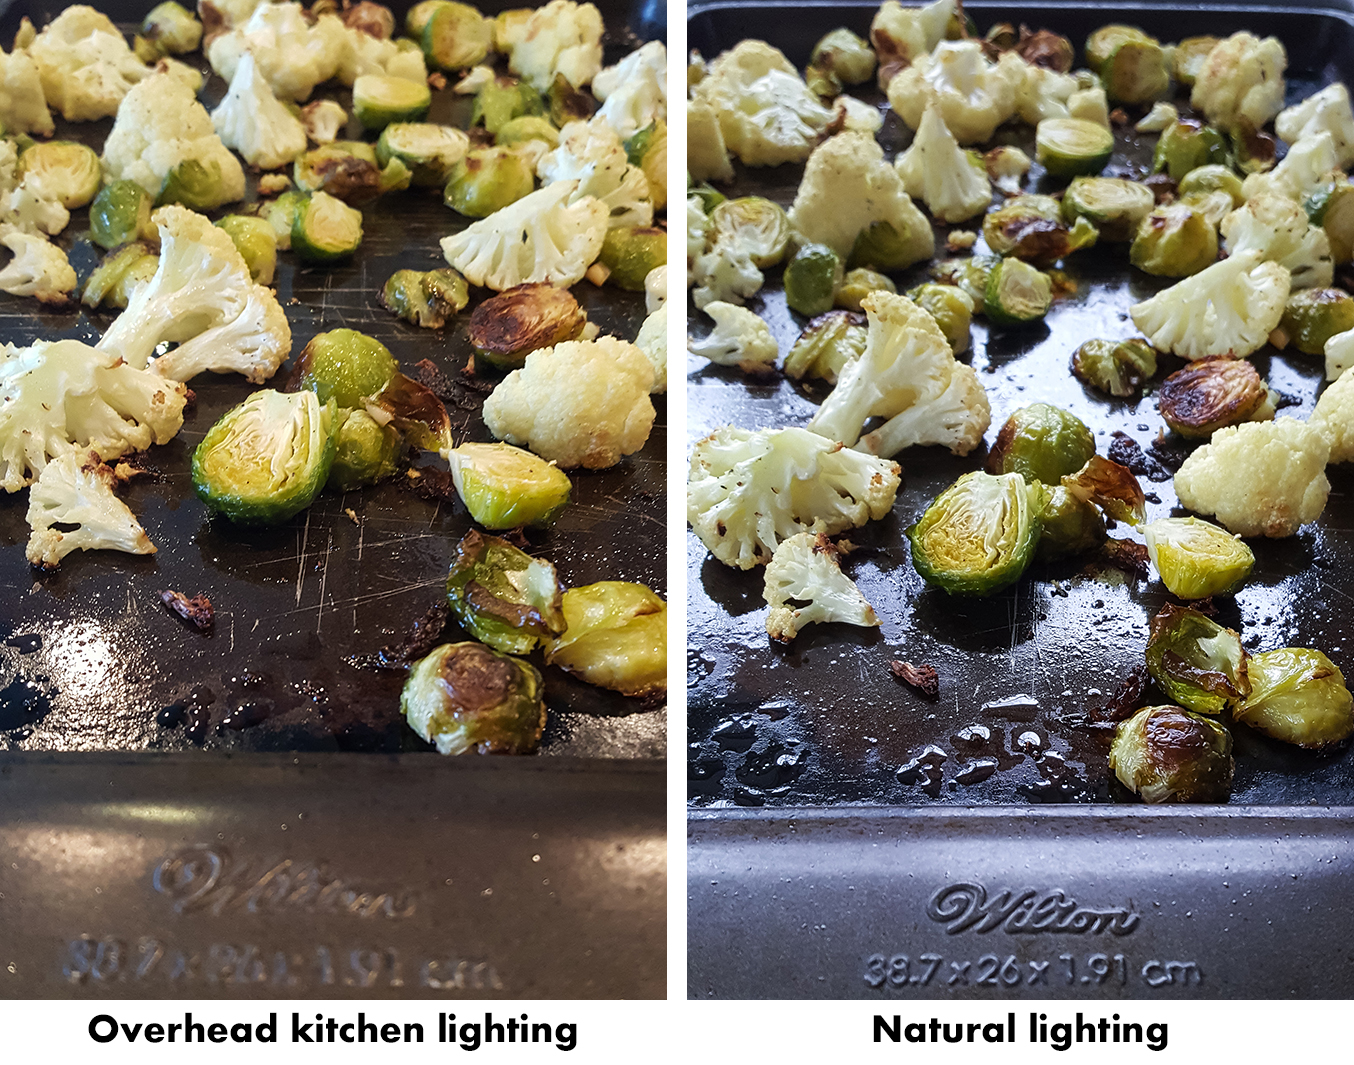 How to Take Better Photos for Your Blog With Your Phone - Overhead kitchen lighting vs. natural lighting. | http://www.roseclearfield.com